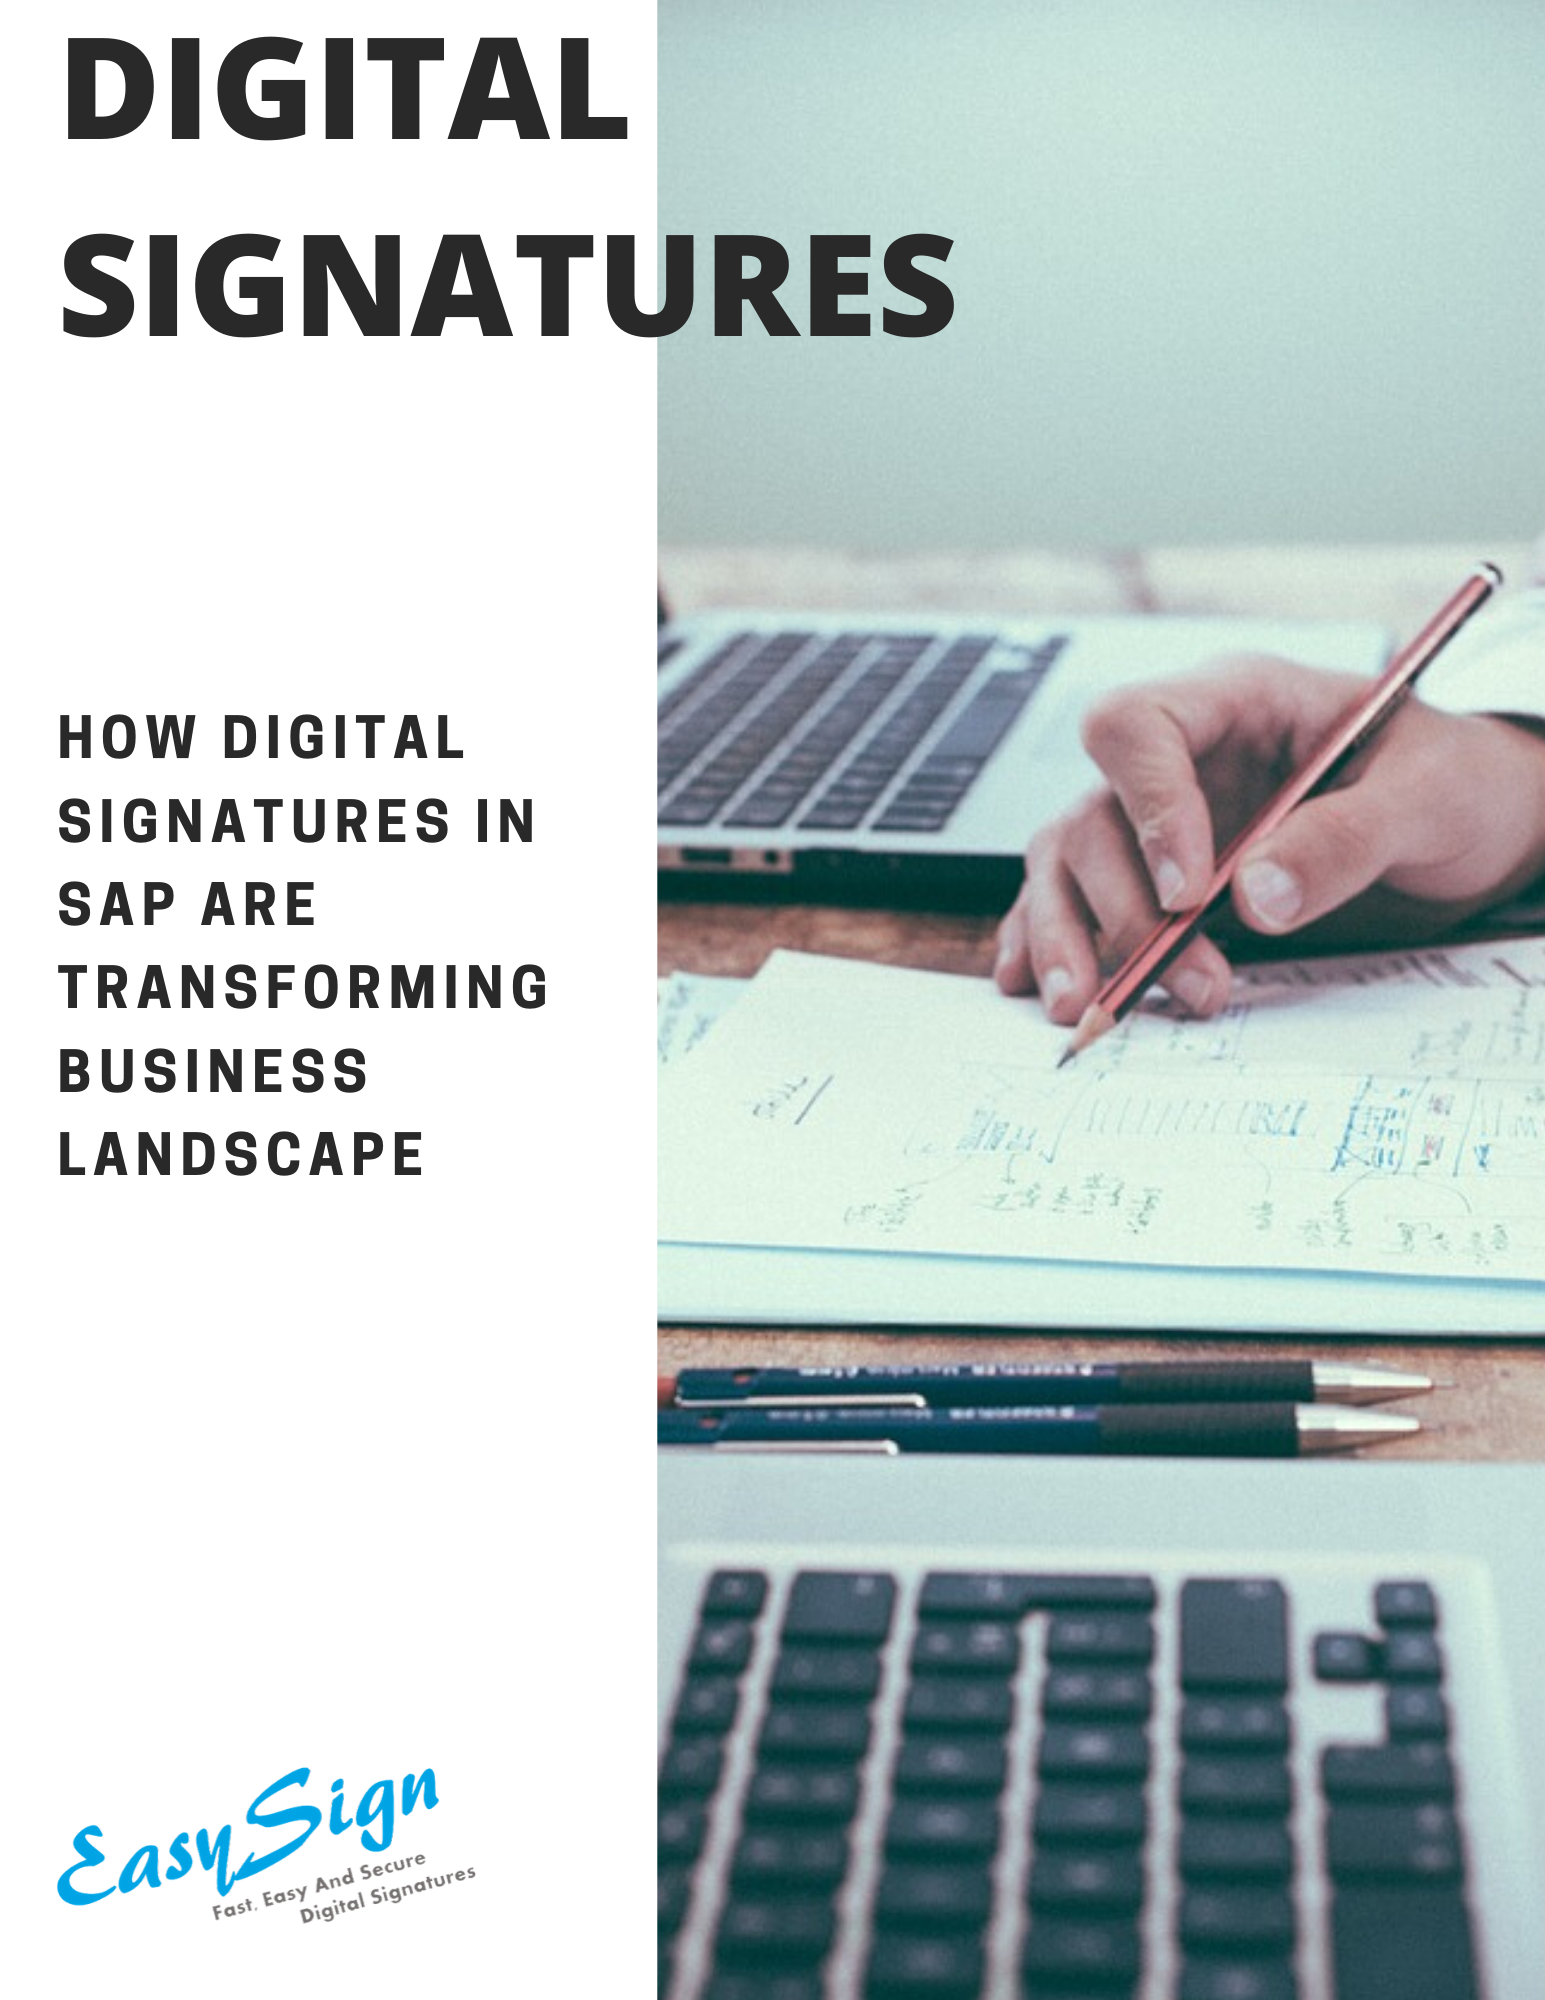 How Digital Signatures in SAP are Transforming the Business Landscape